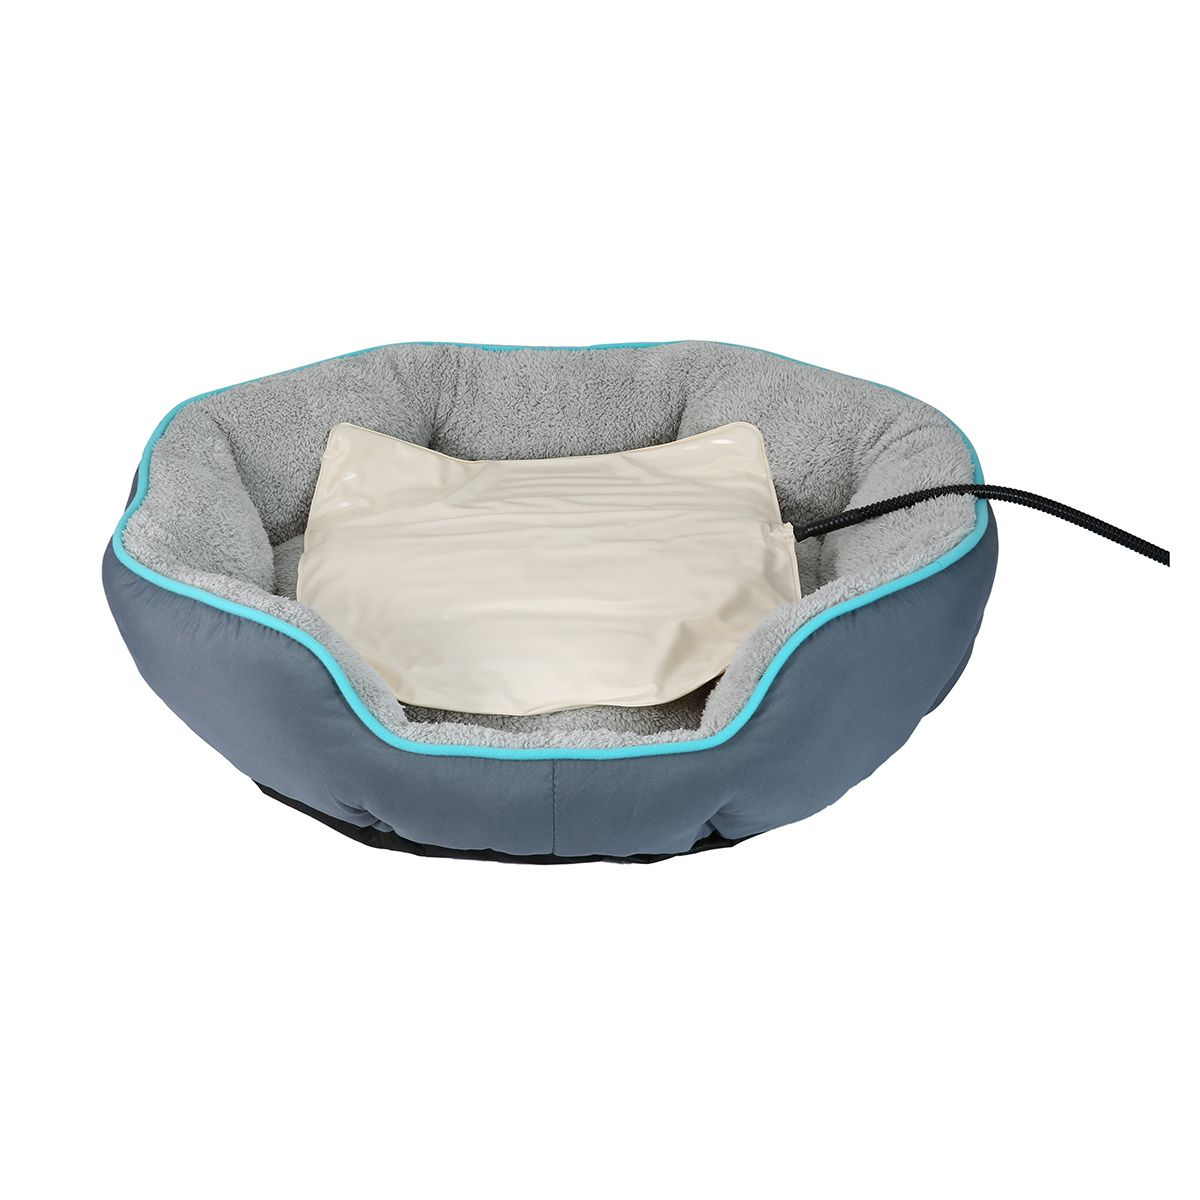 Heated Pet Bed Kmart With Images Heated Pet Beds Bed Sizes